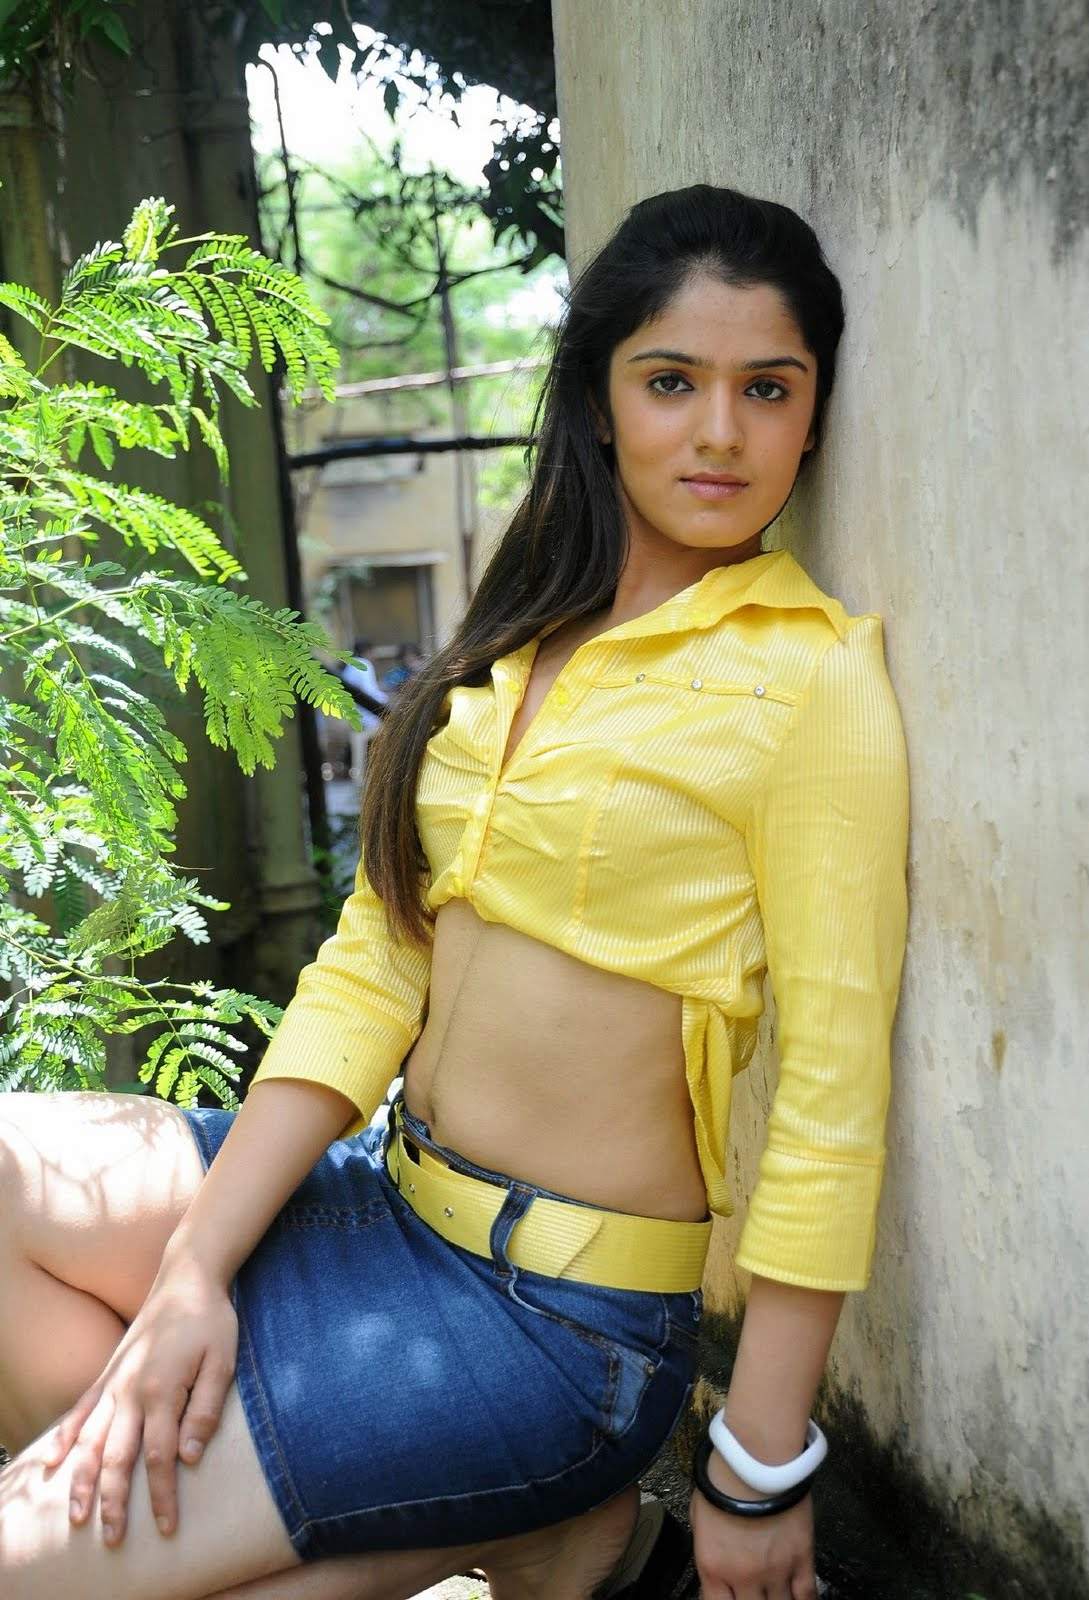 Shefali Sharma Gurbani Shefali sharma yellow Shefali Sharma Hot